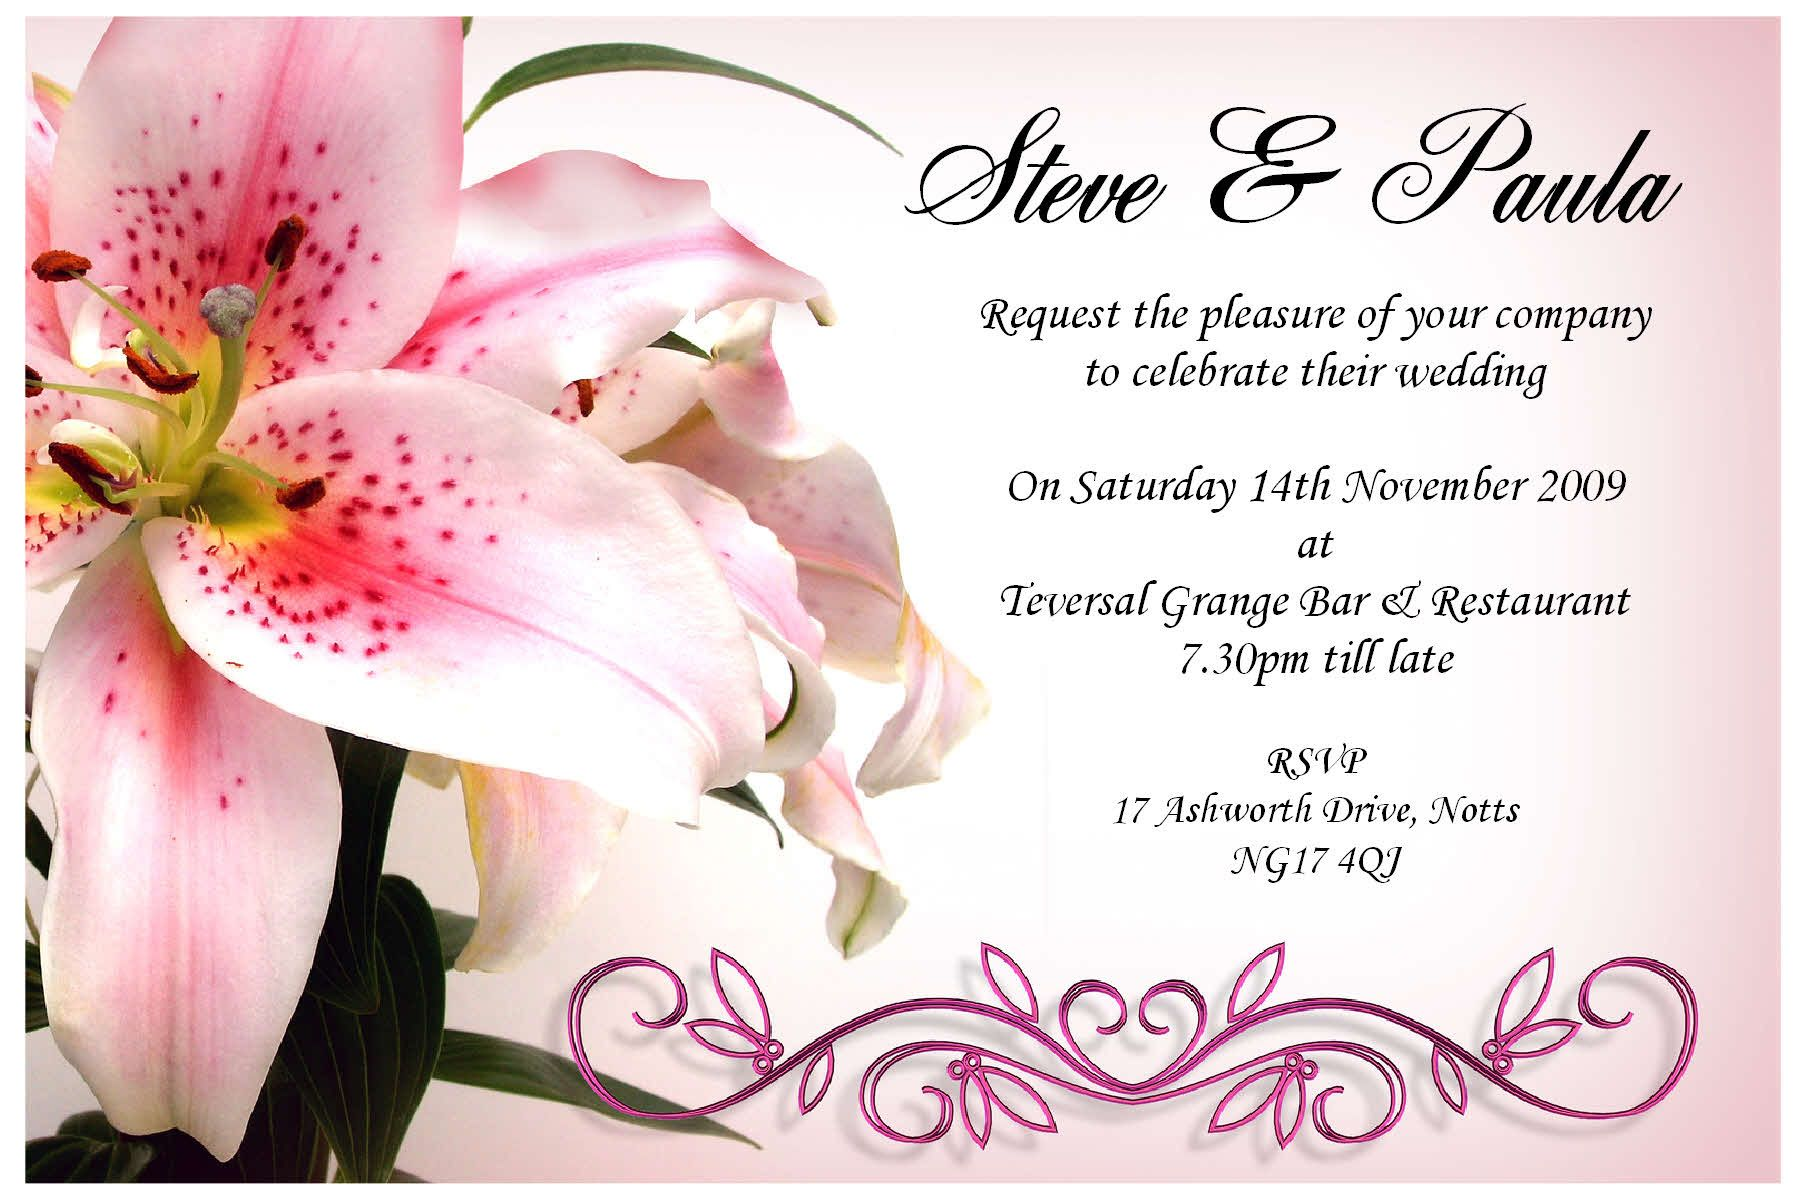 Collection of thousands of Free Affordable Wedding Invitation from